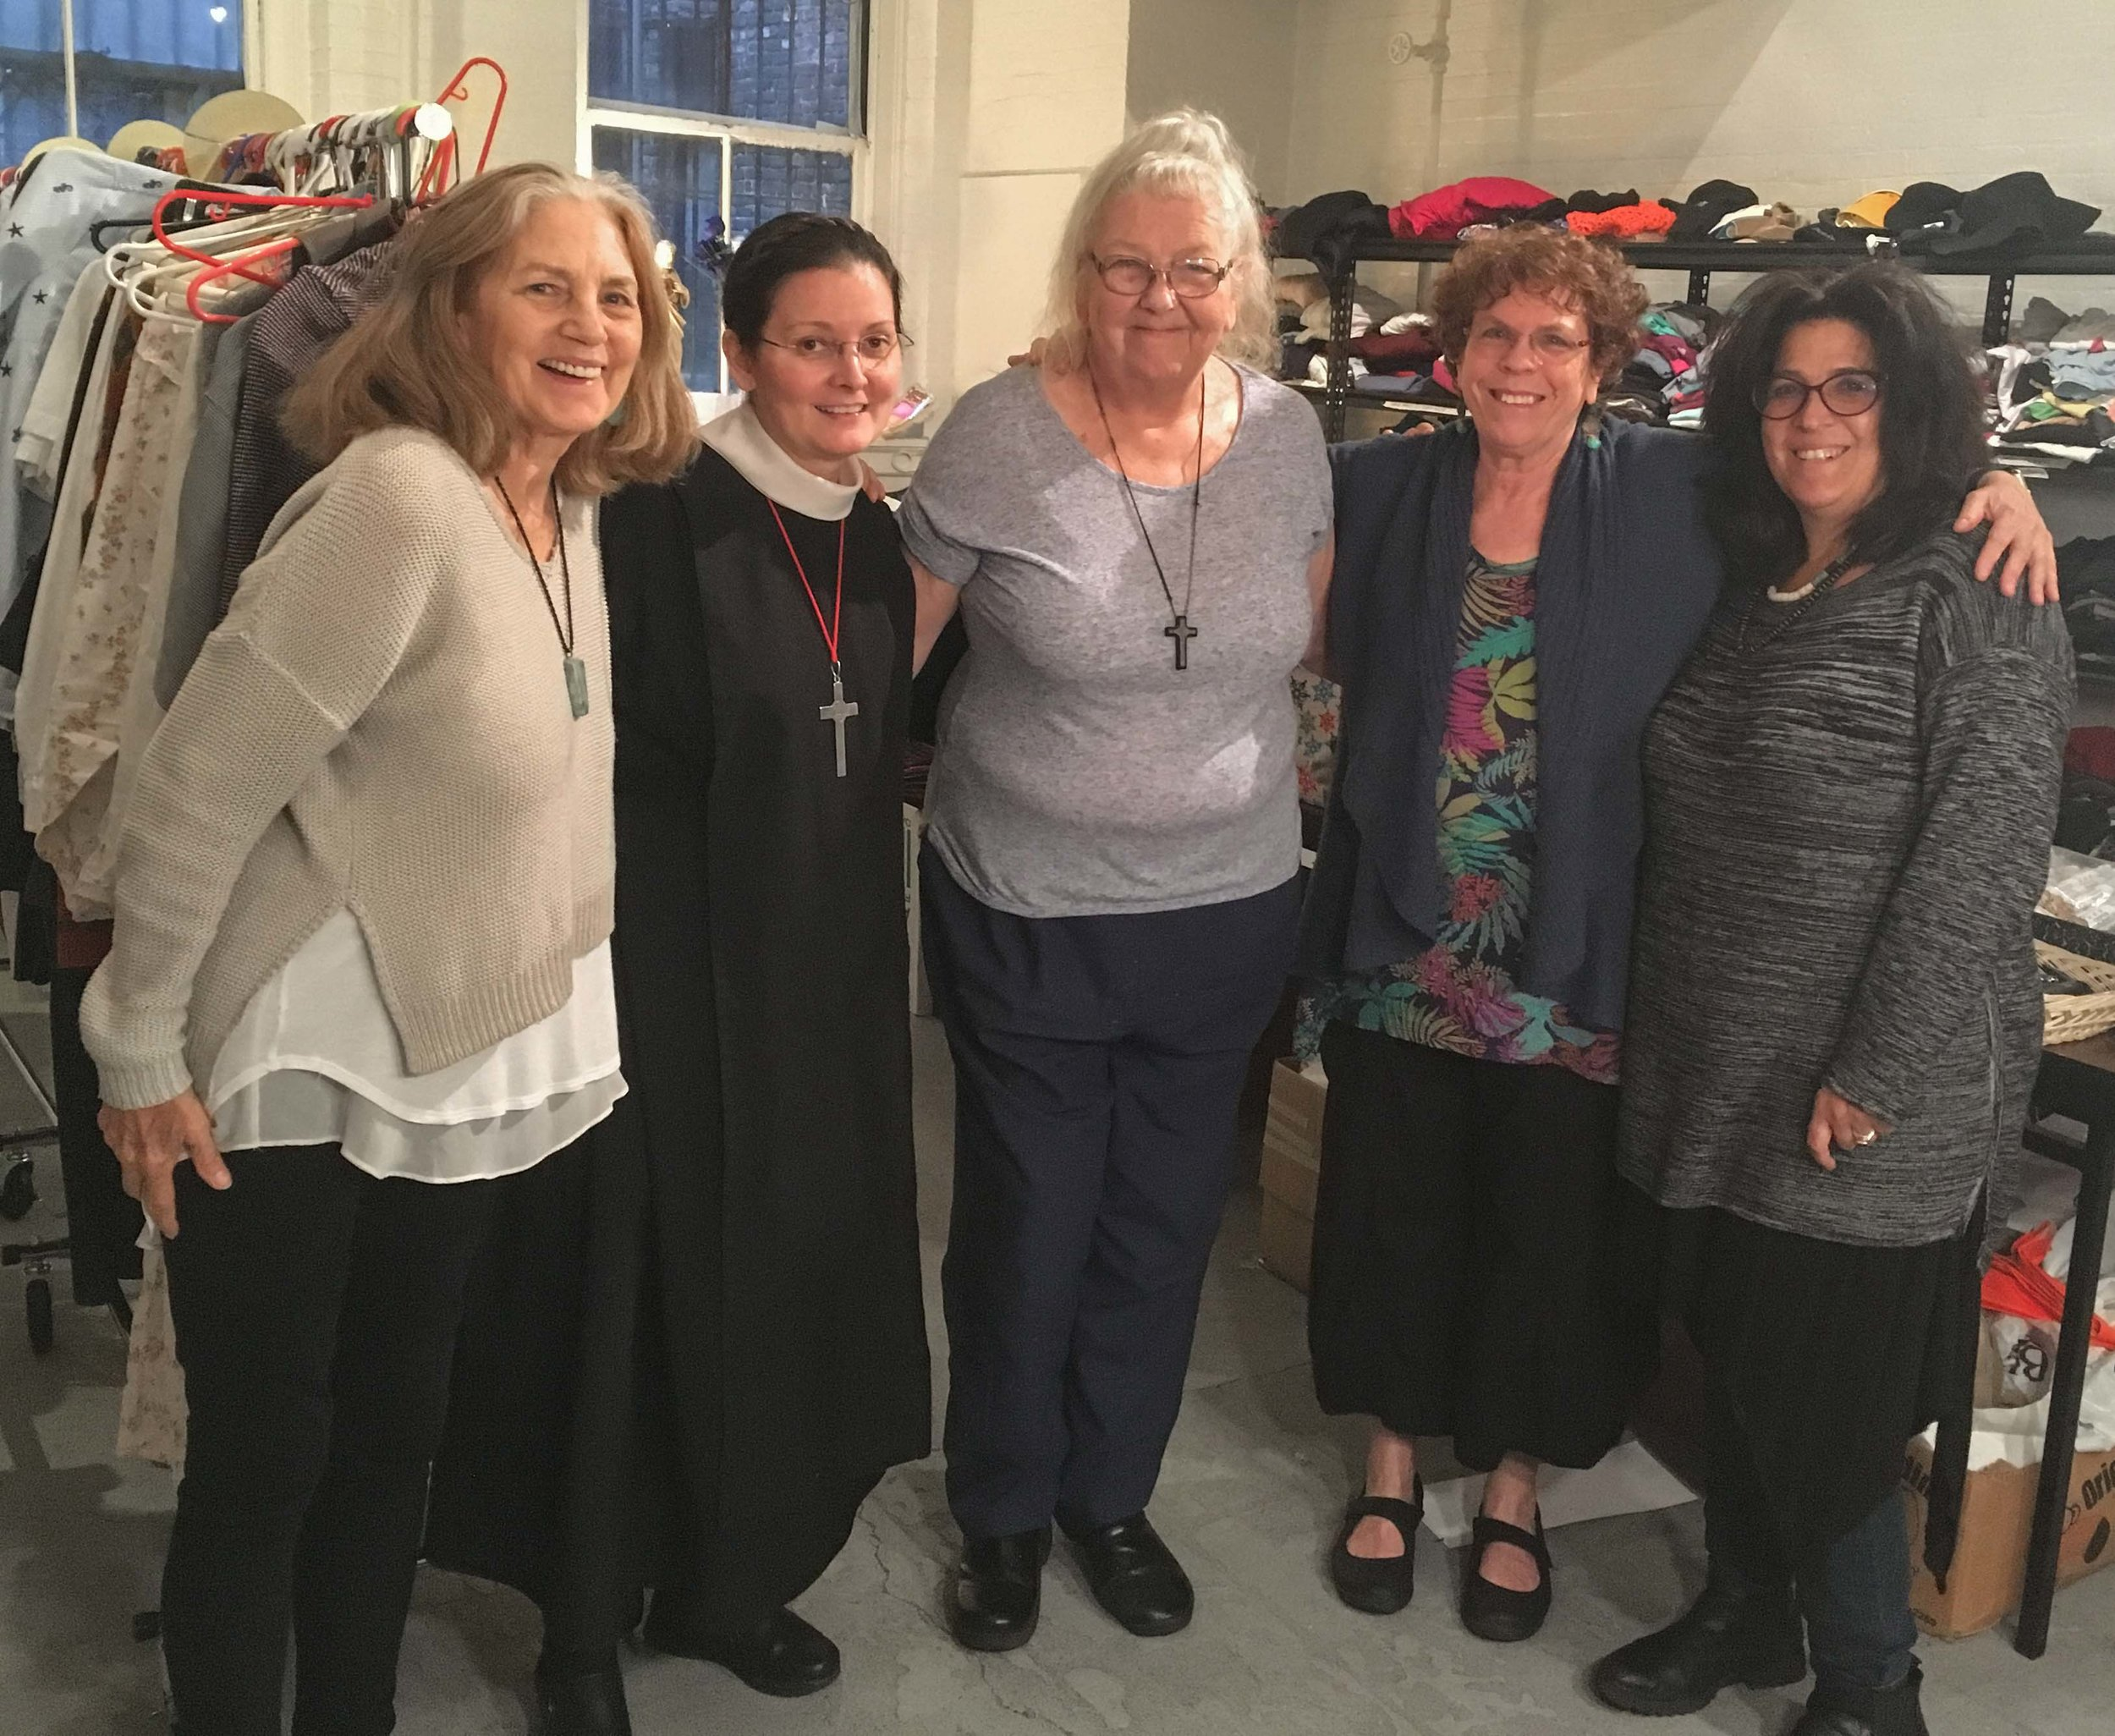 Volunteers for the Drop-in Day (L to R): Virginia Bell, Sr. Monica Clare, Deacon Lind Phillips, The Reverend Debby Schlein, and Judith Adler.   Photo by Harka Gurung